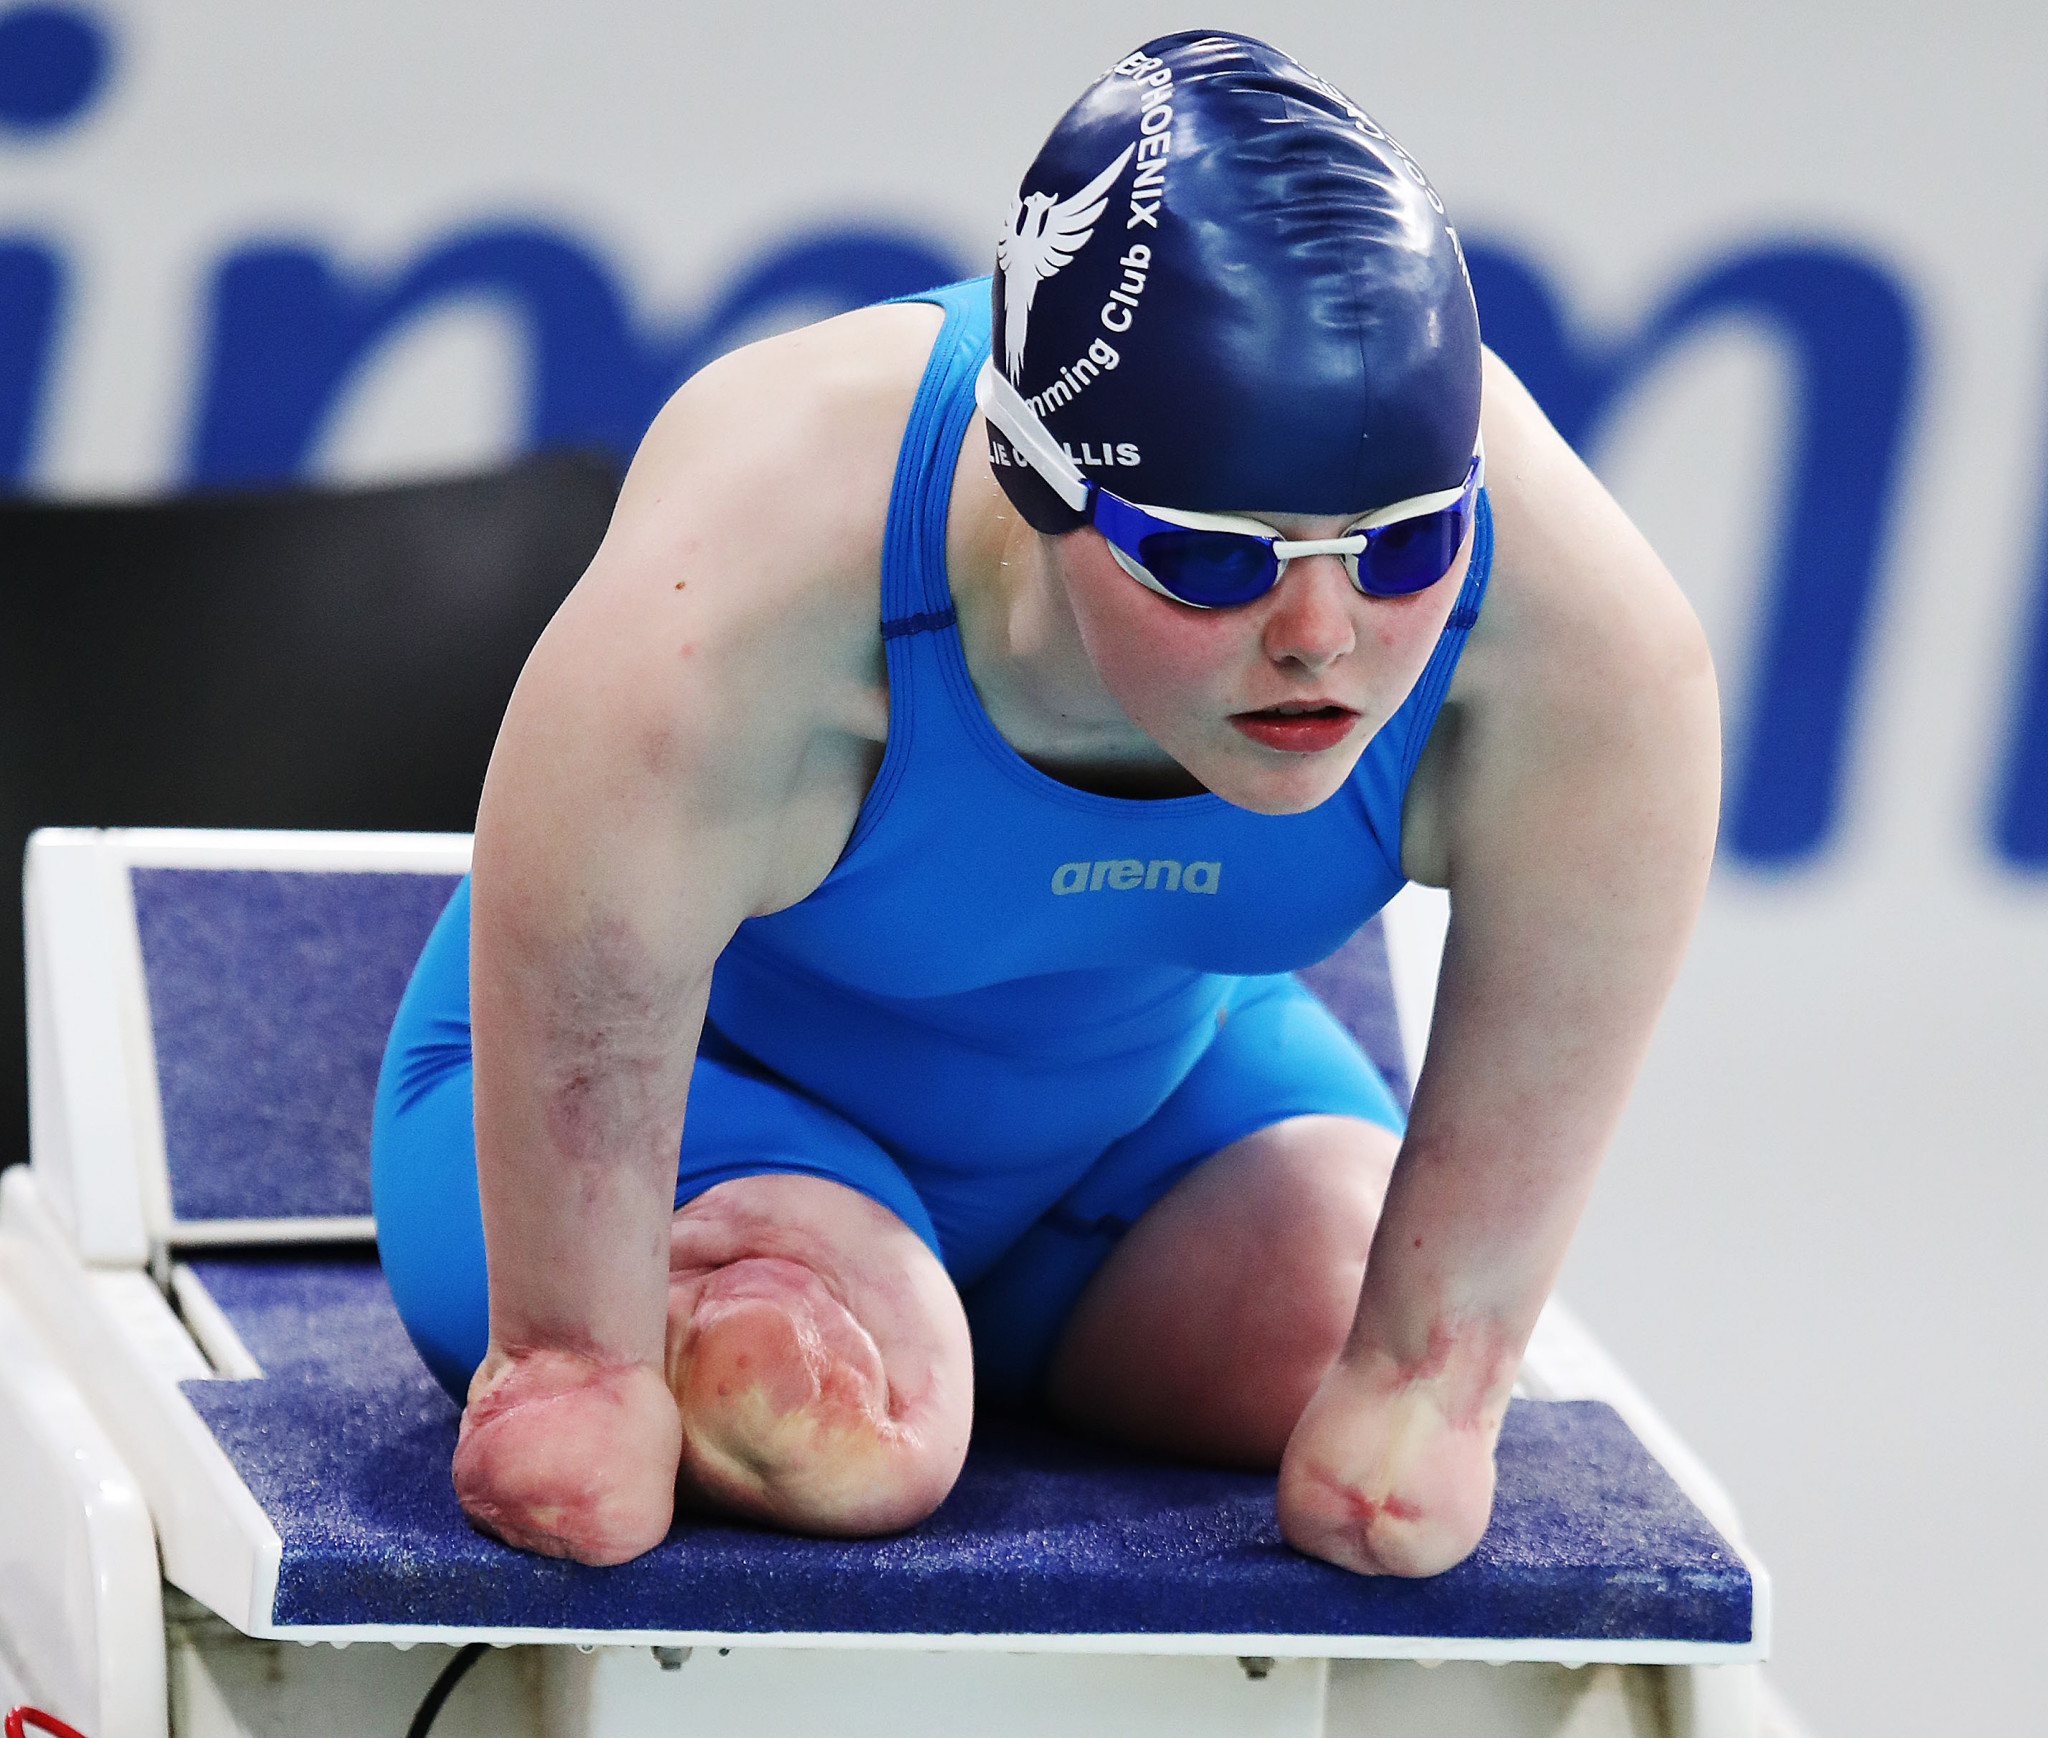 Six world records fall on day three of World Para Swimming World Series in Glasgow